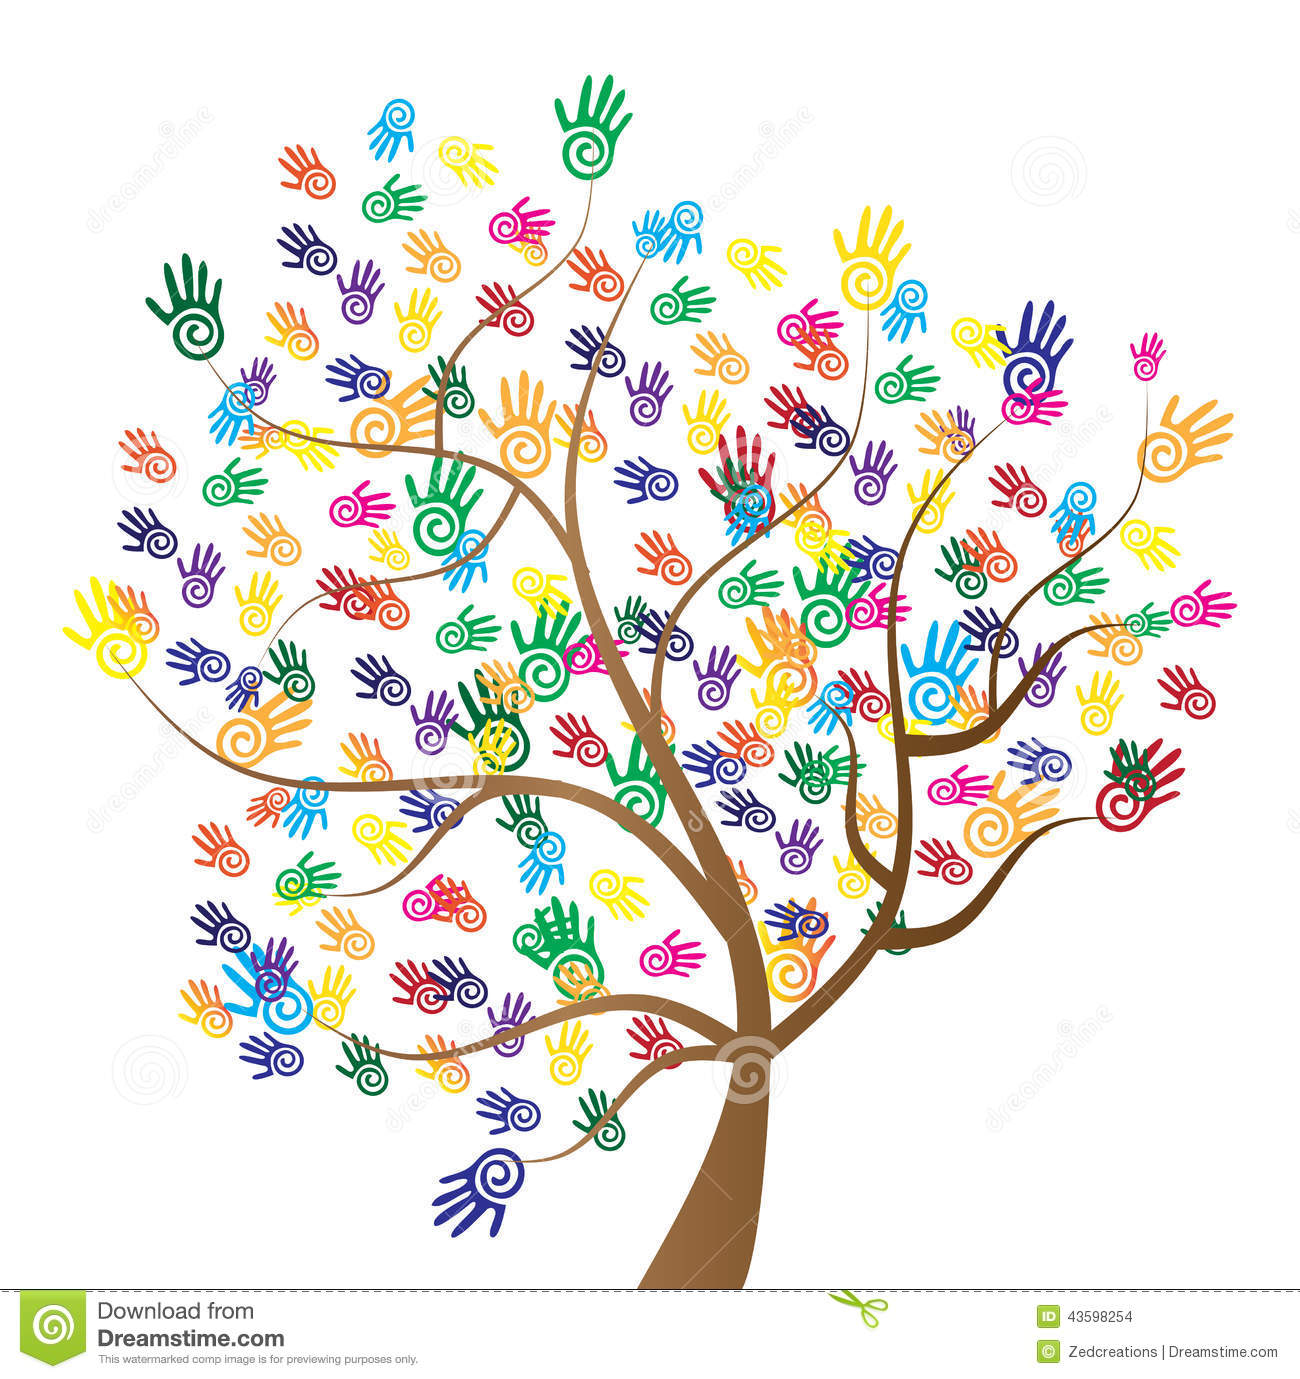 diversity tree hands stock illustration illustration of handprint vector free handprint vector free